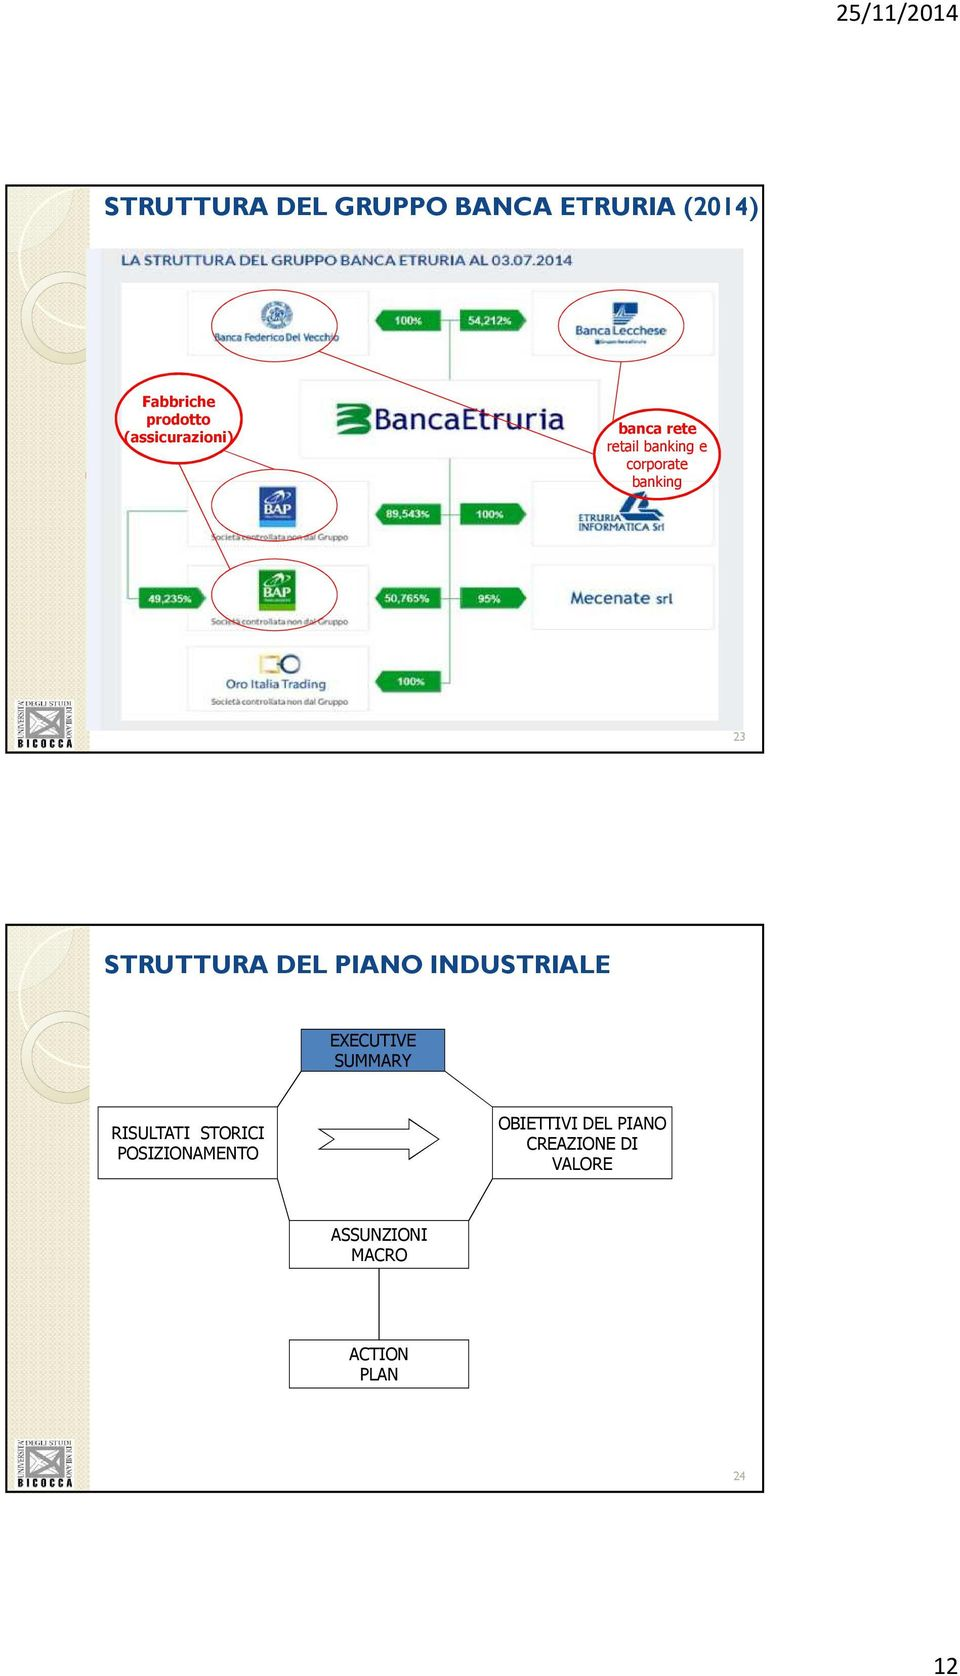 management management investment banking 23 STRUTTURA DEL PIANO INDUSTRIALE EXECUTIVE SUMMARY